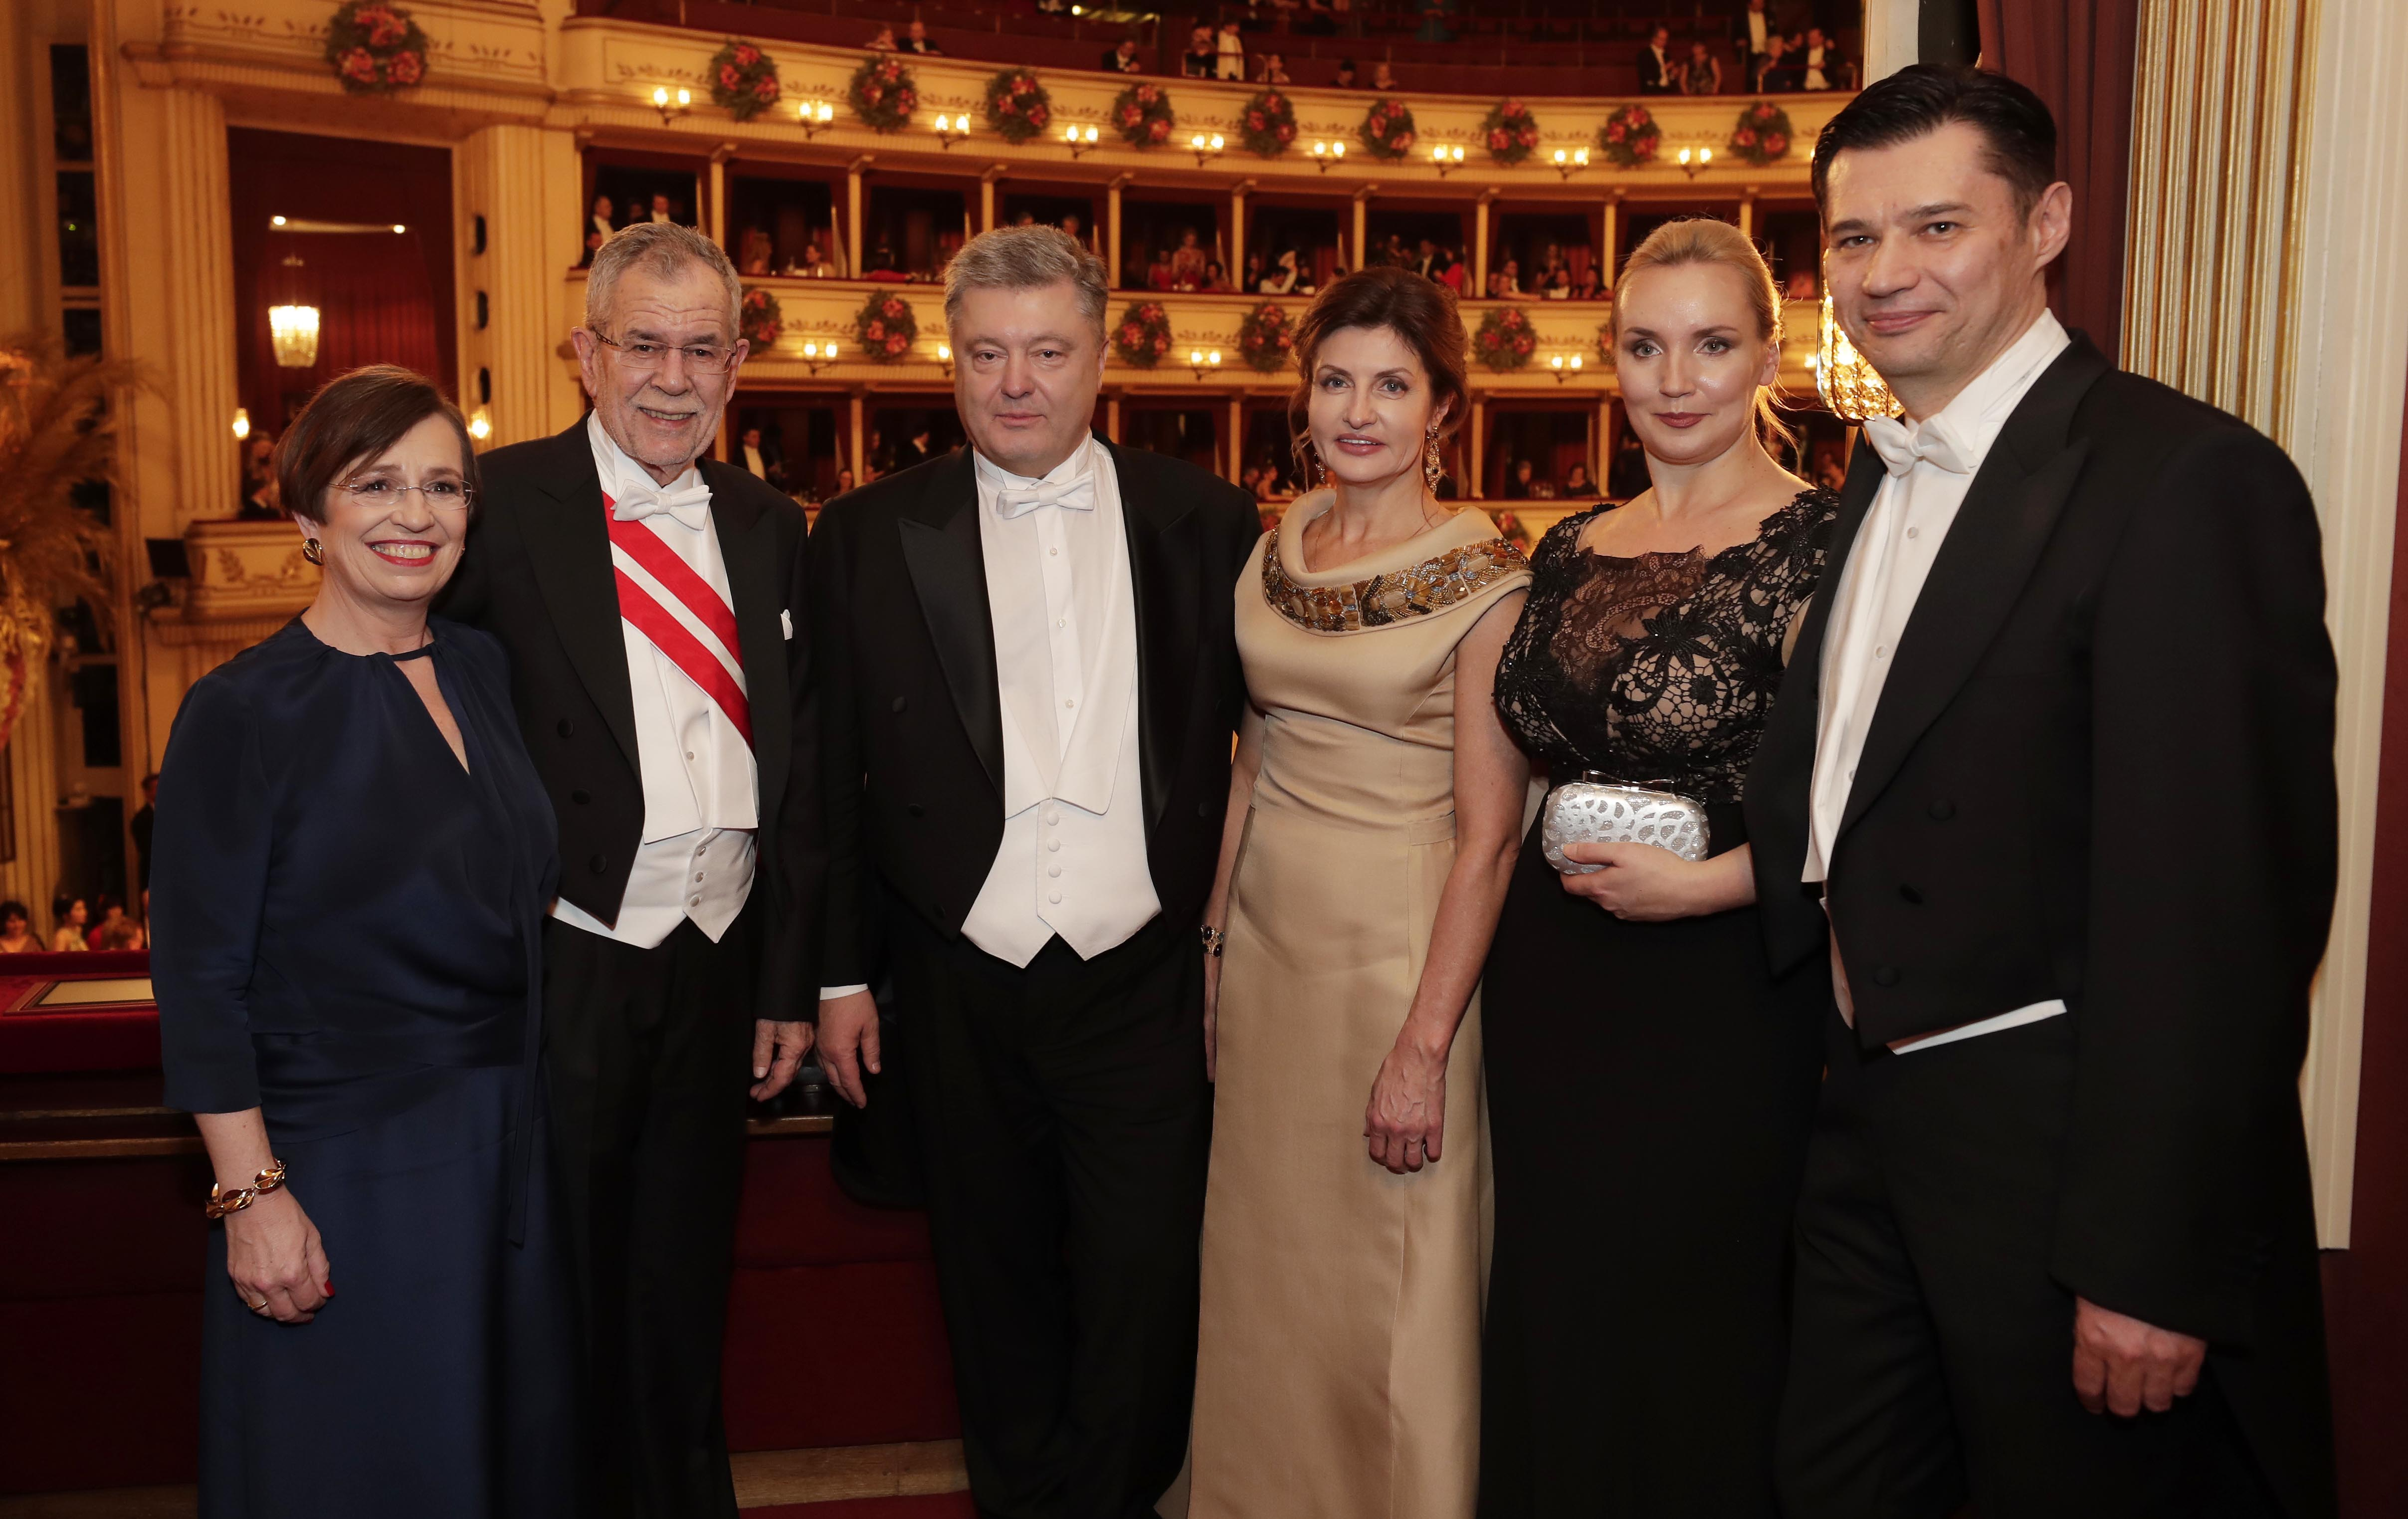 news/62. Wiener Opernball77/1.jpg